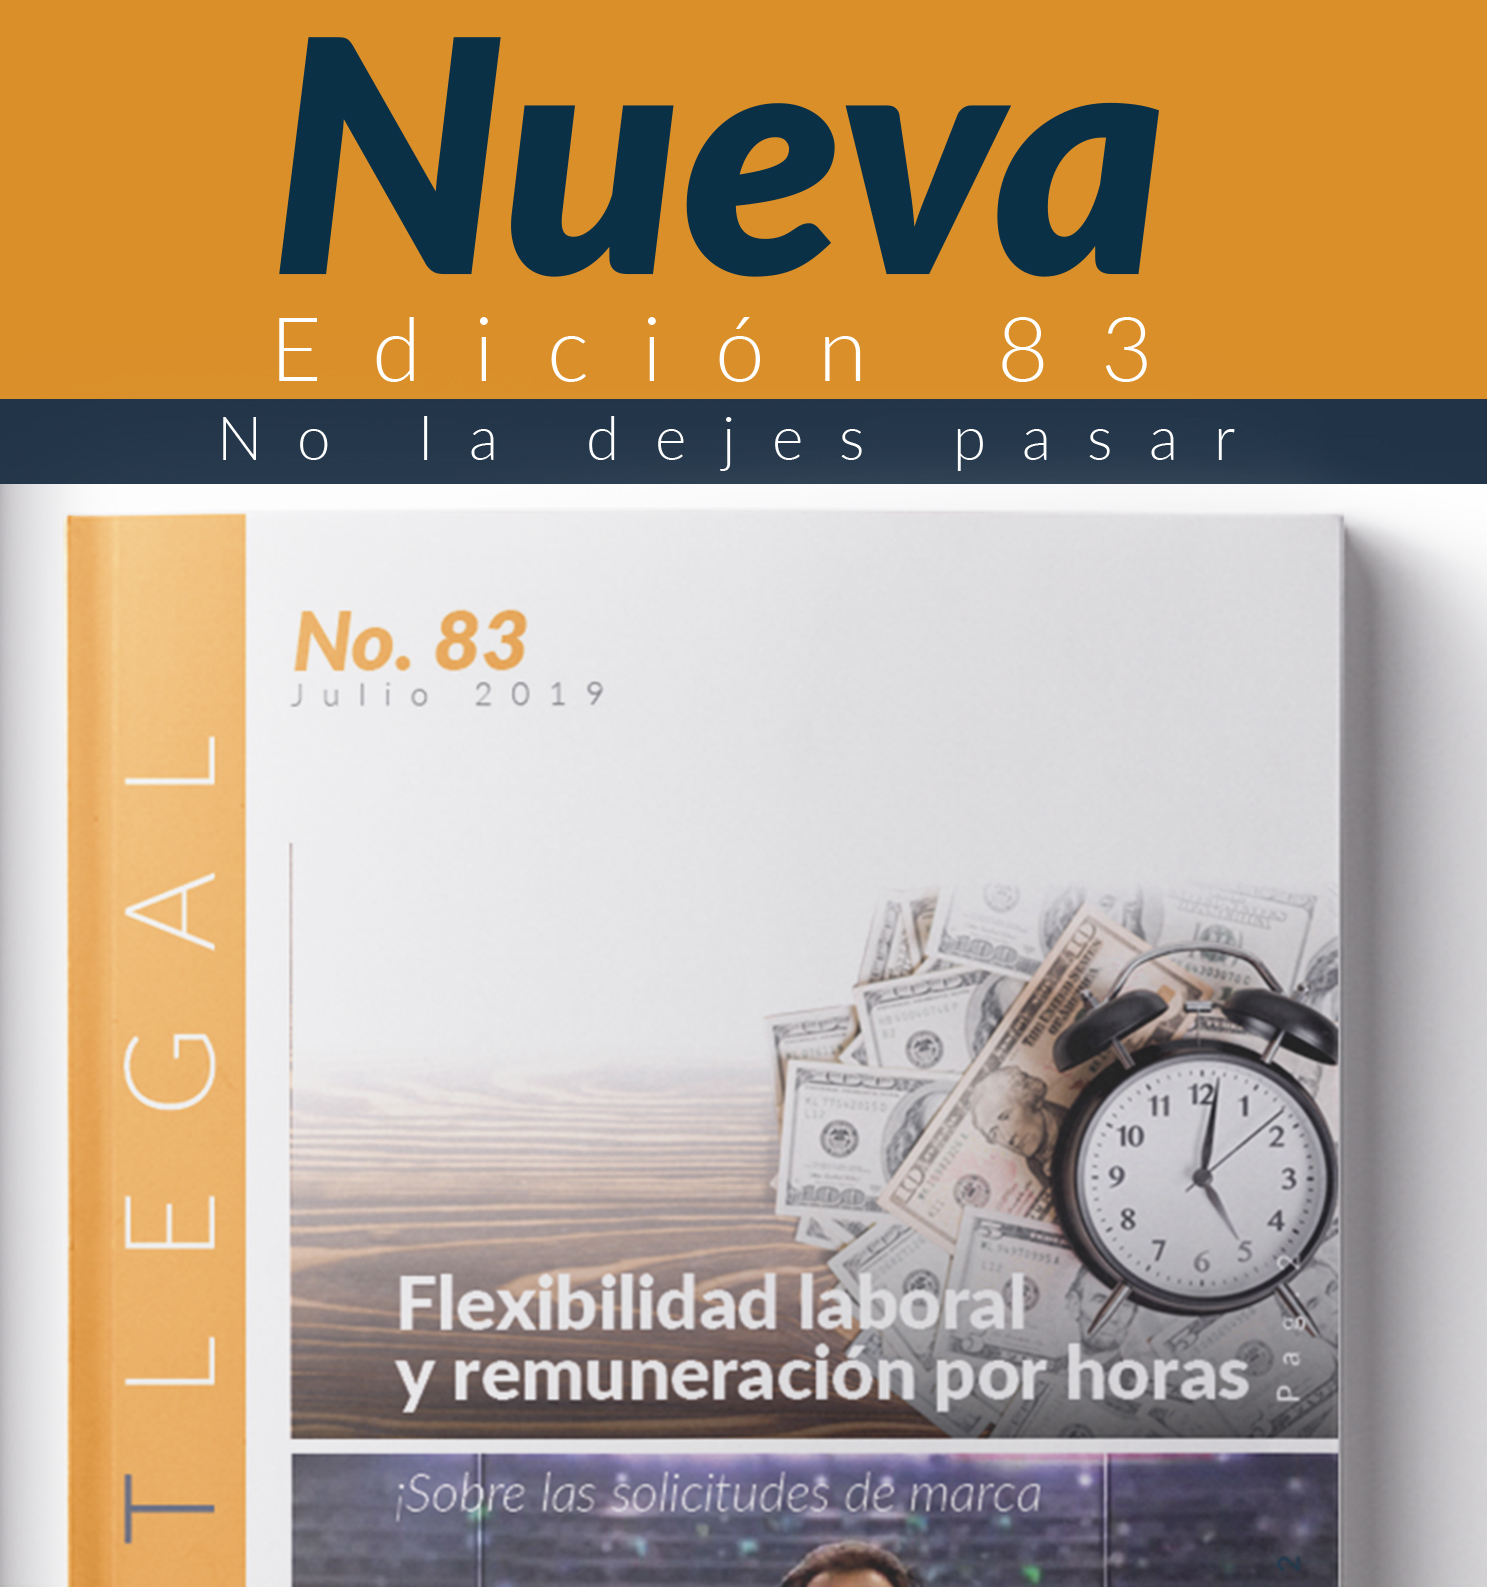 Edición Notinet legal No. 83 -Julio -2019